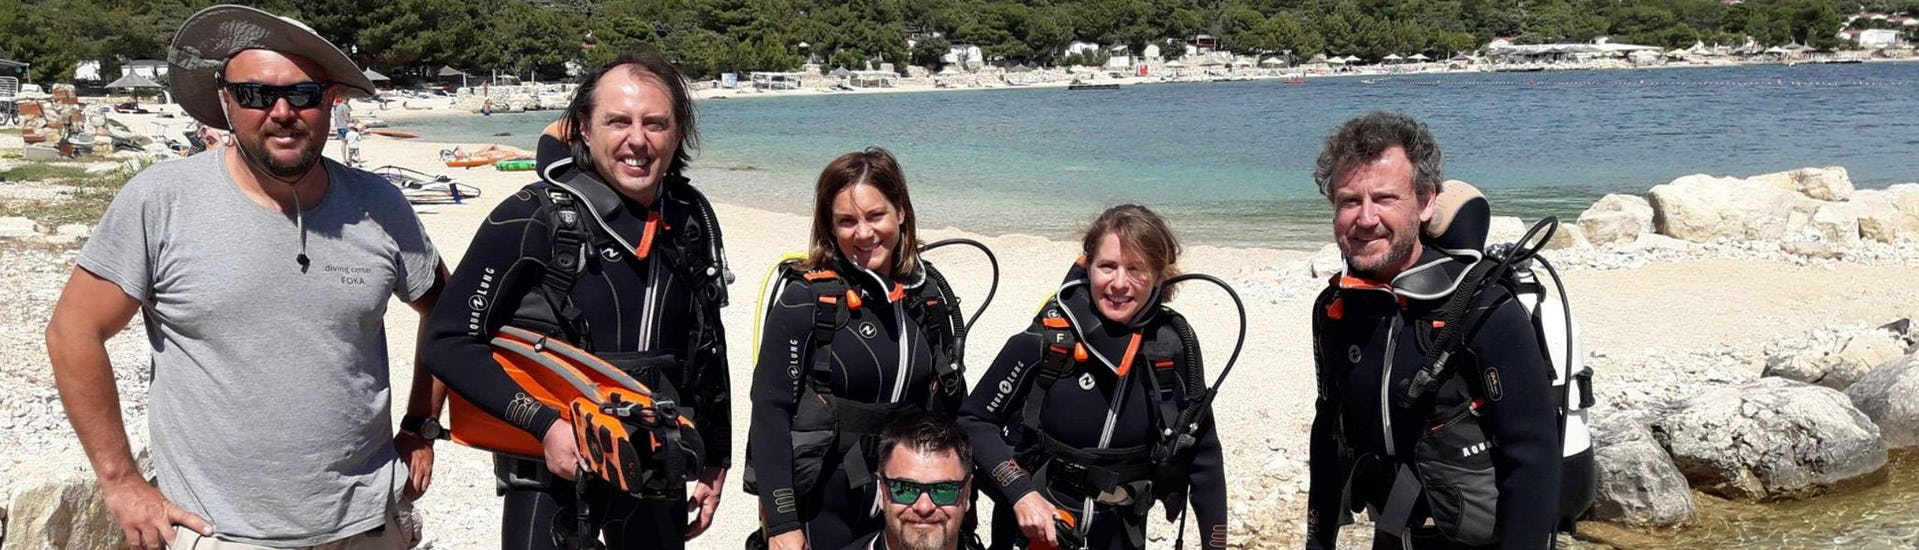 Scuba Diving Course for Beginners - NAUI Open Water Diver